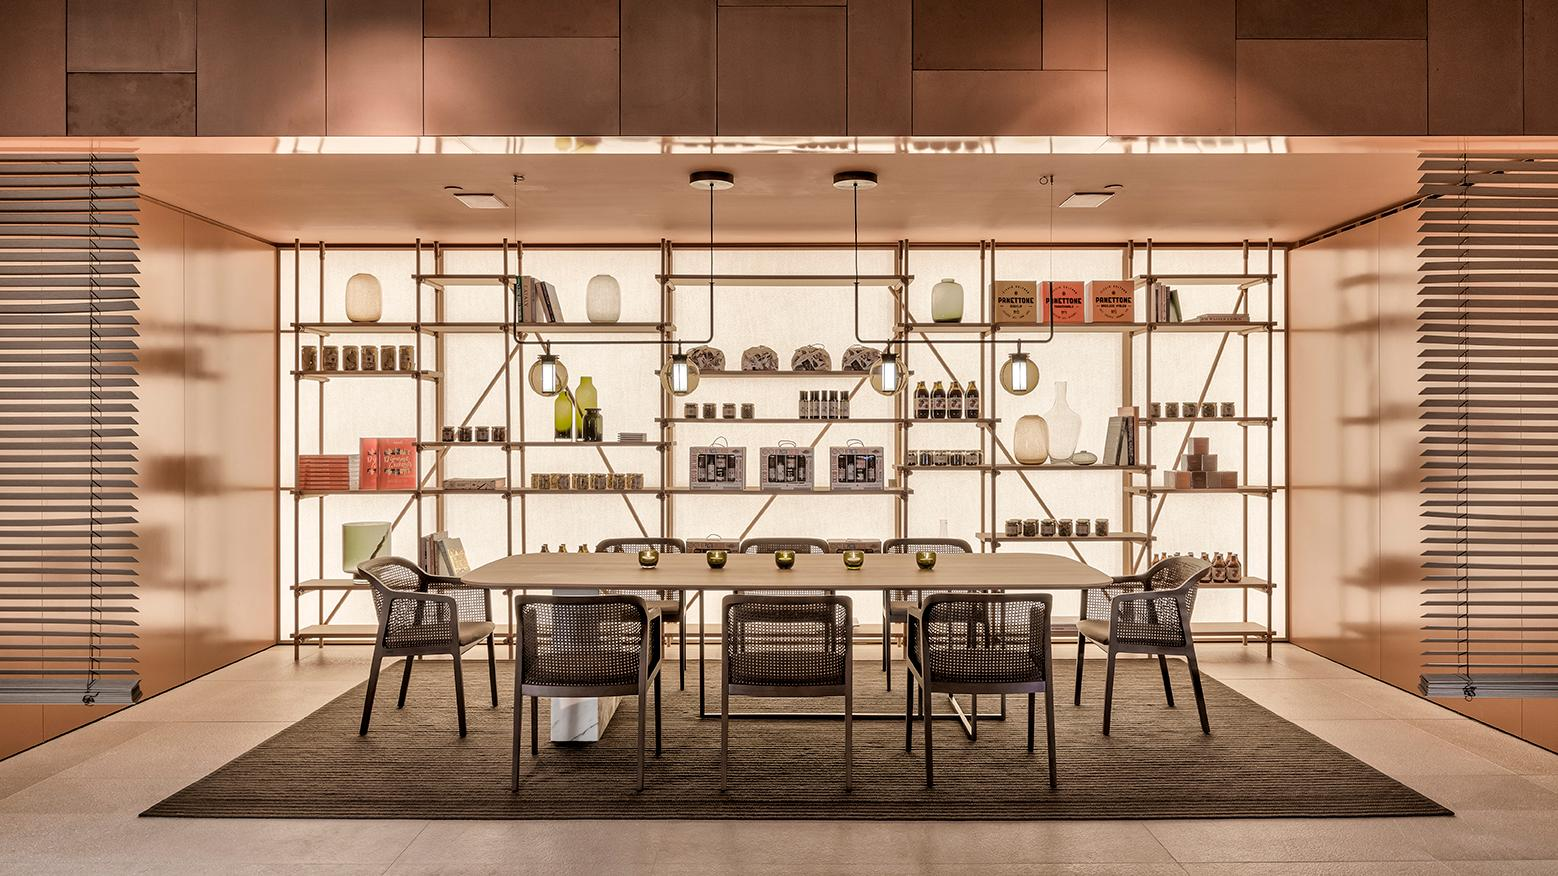 Pastamara features a private dining room called Studio, which is at the same time a modern concept store offering delicious take-away products from Ciccio Sultano